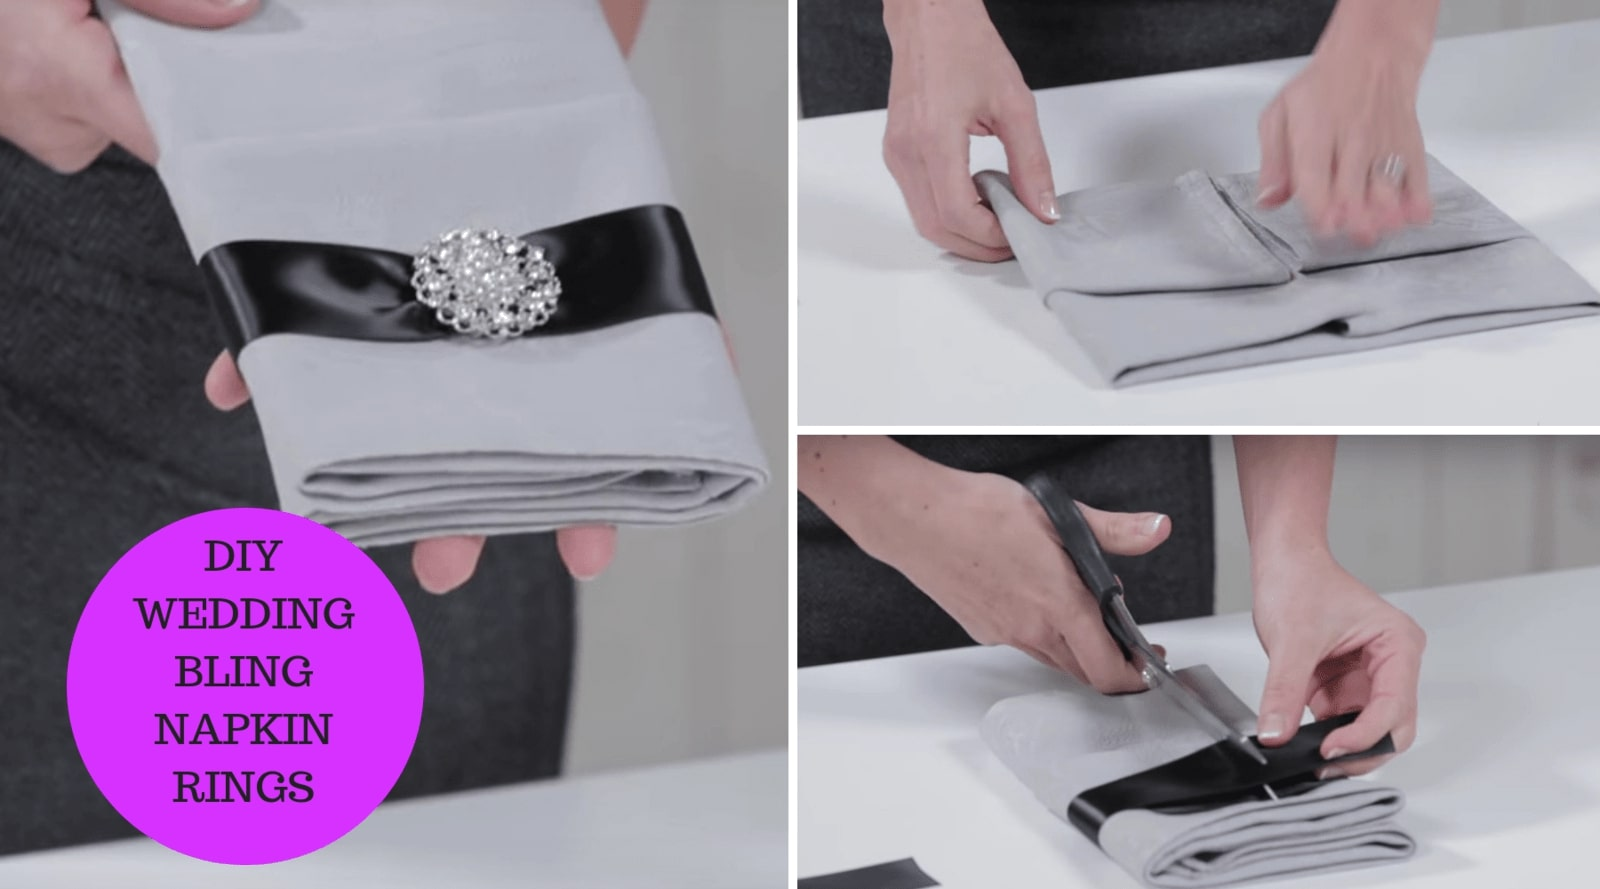 DIY Wedding Bling Napkin Rings a Do it Yourself Wedding Decoration Project